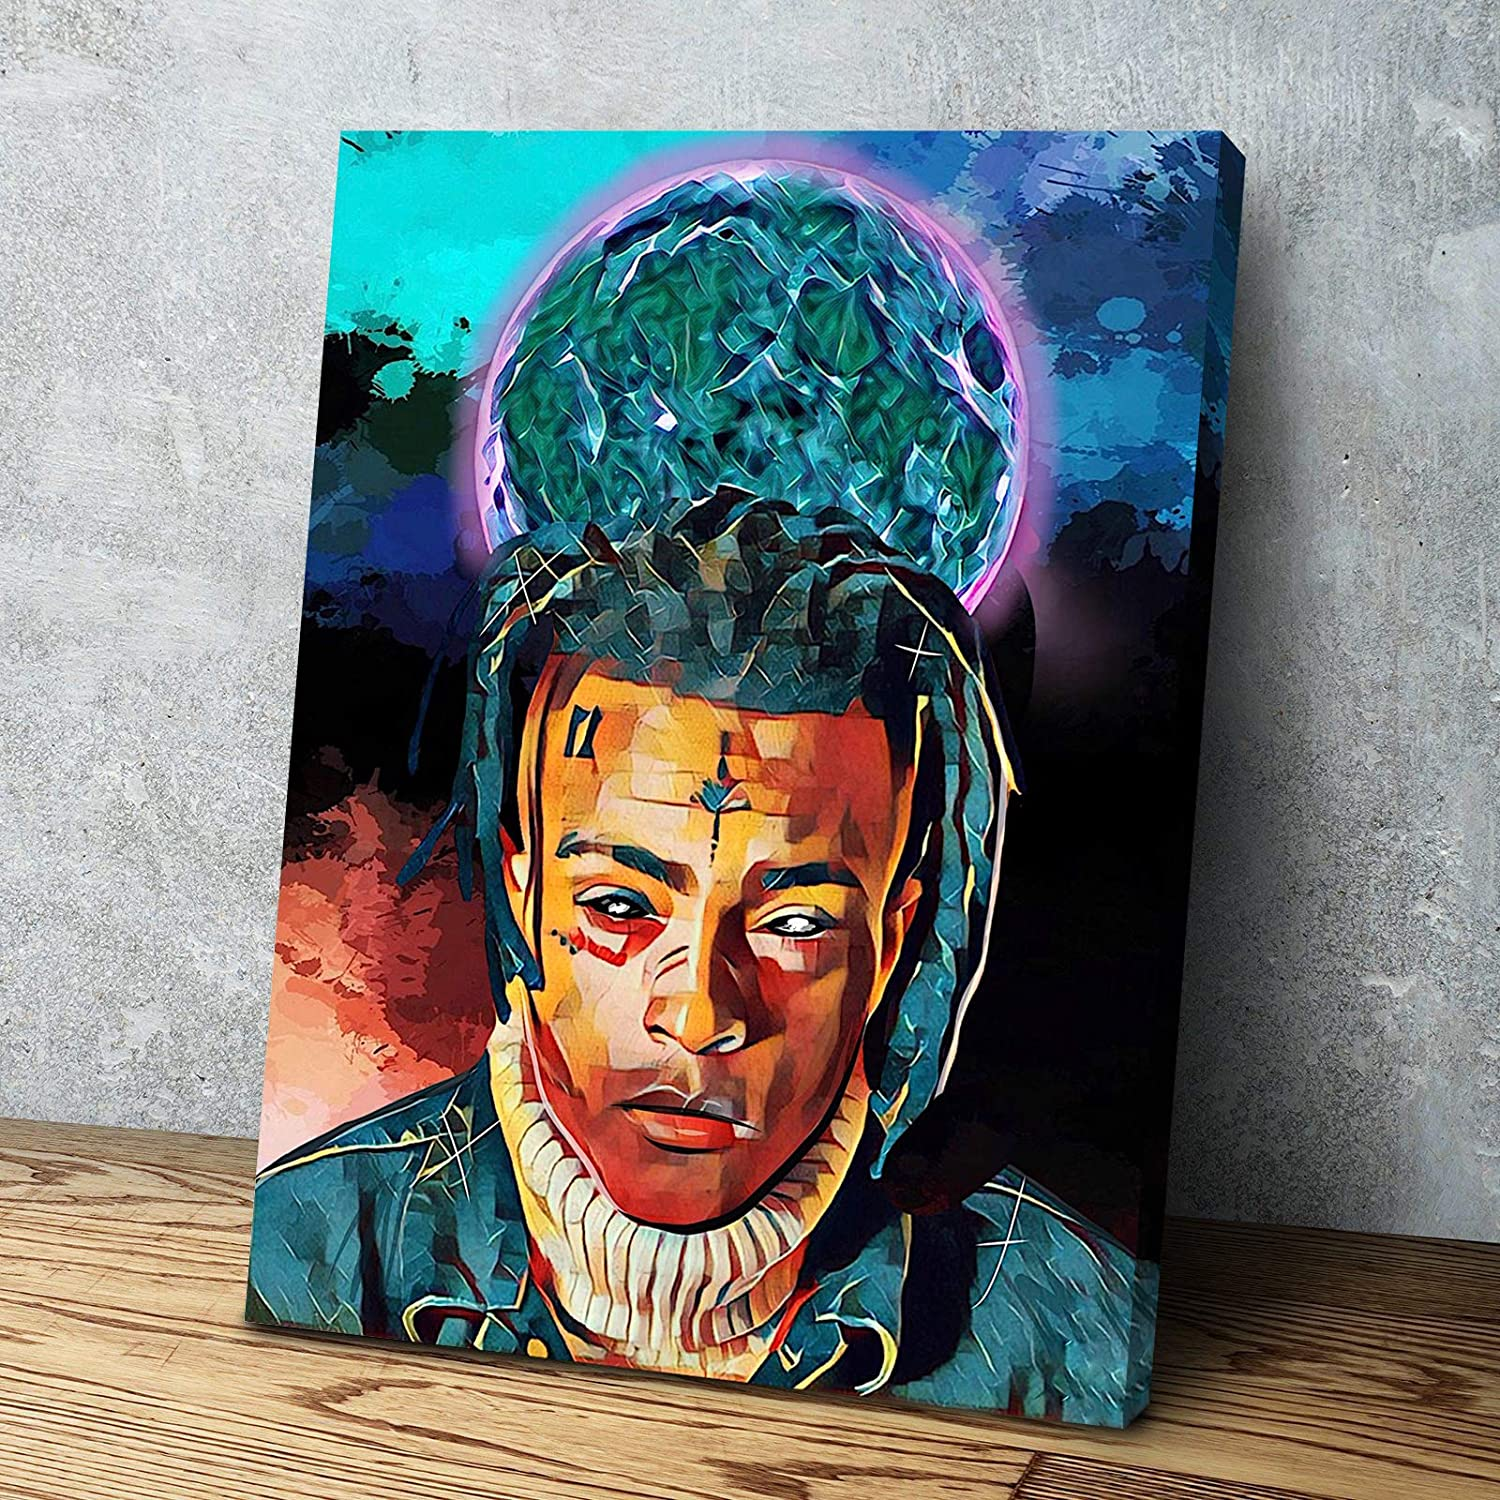 Rappers Famous People Hand Drawn Canvas Wall Art Home Decor (18in x 24in Framed, Xxxtentacion)